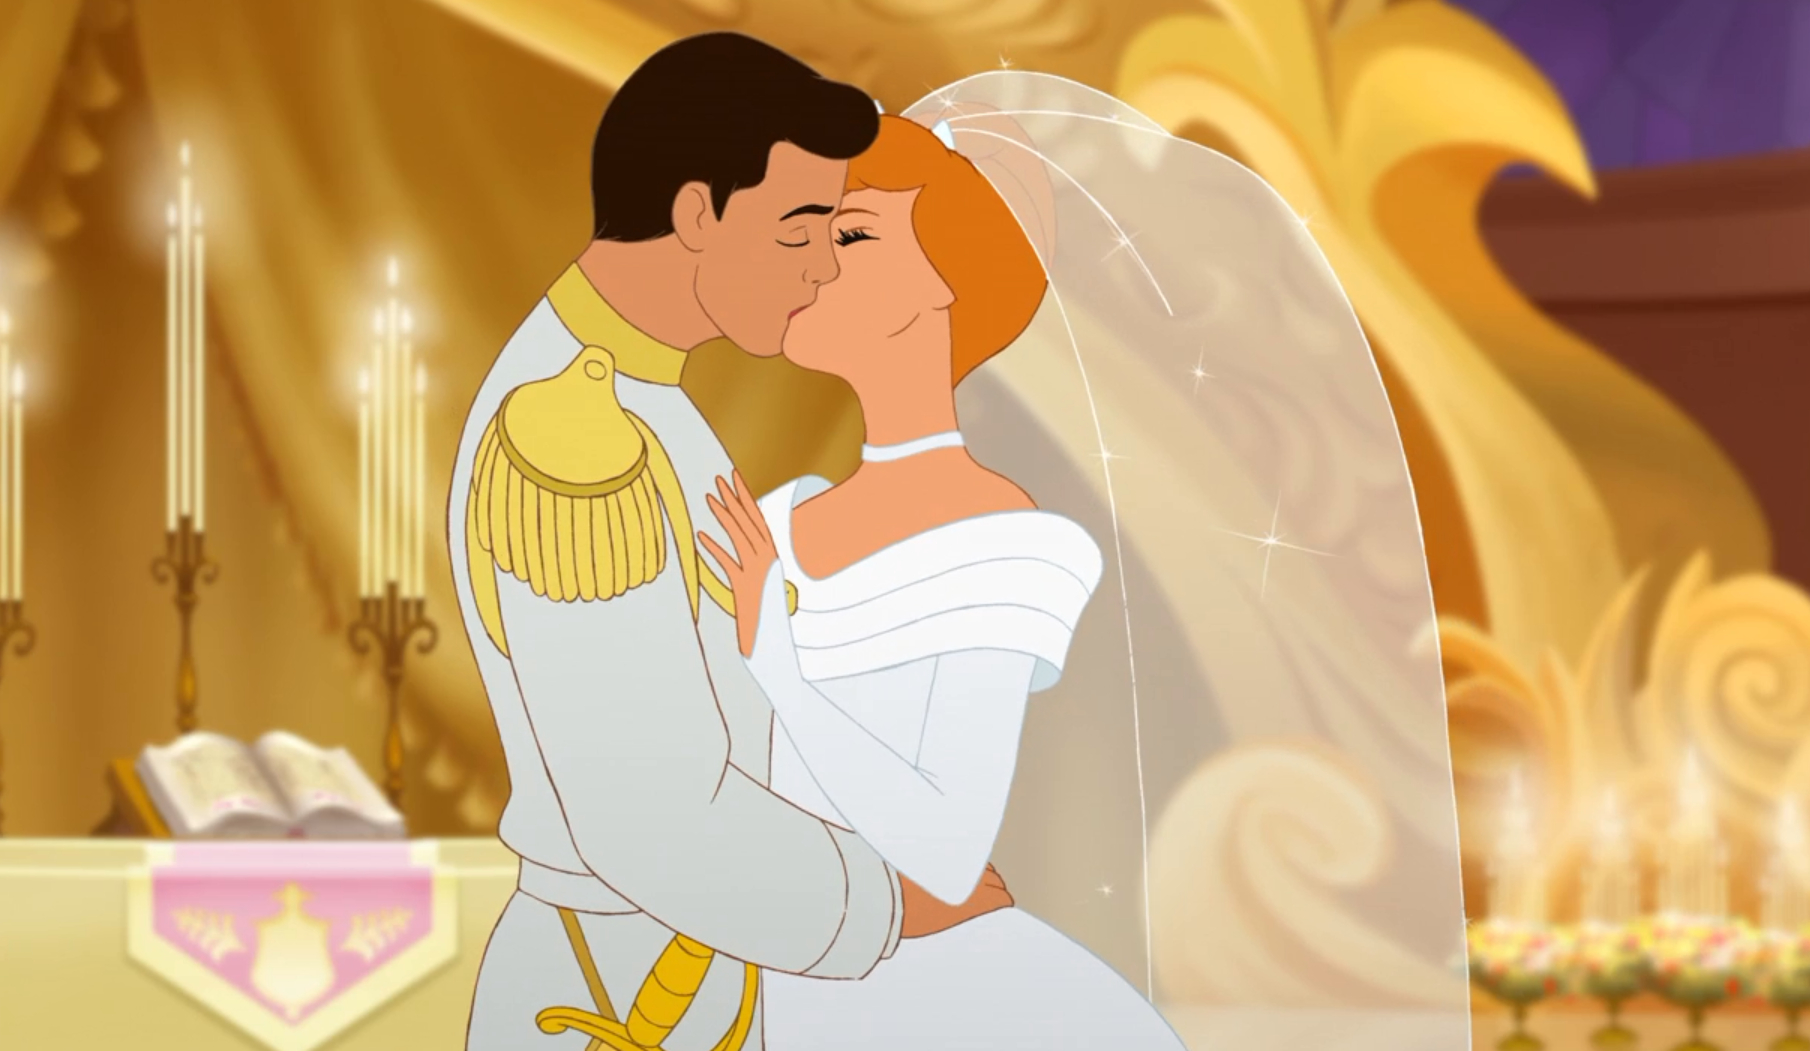 Cendrillon Wedding - Disney Photo (37796533) - Fanpop - Page 3 à Cendrillon 3 Disney